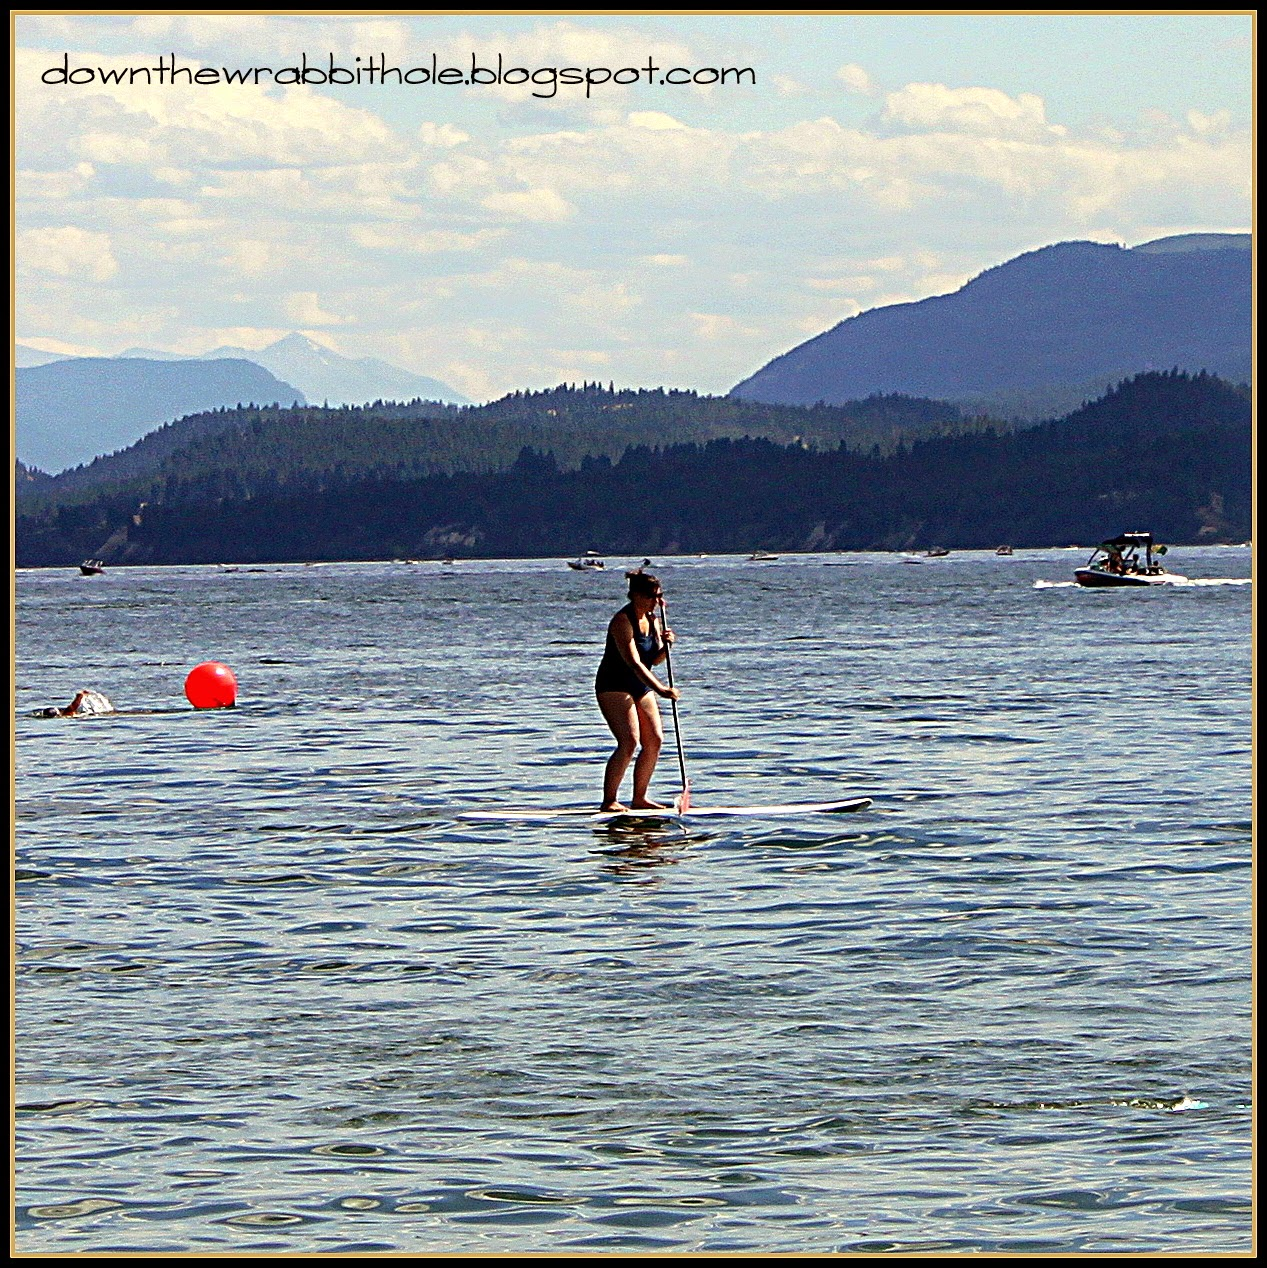 SUP rentals Invermere, SUP tips and tricks, stand up paddle boarding guide